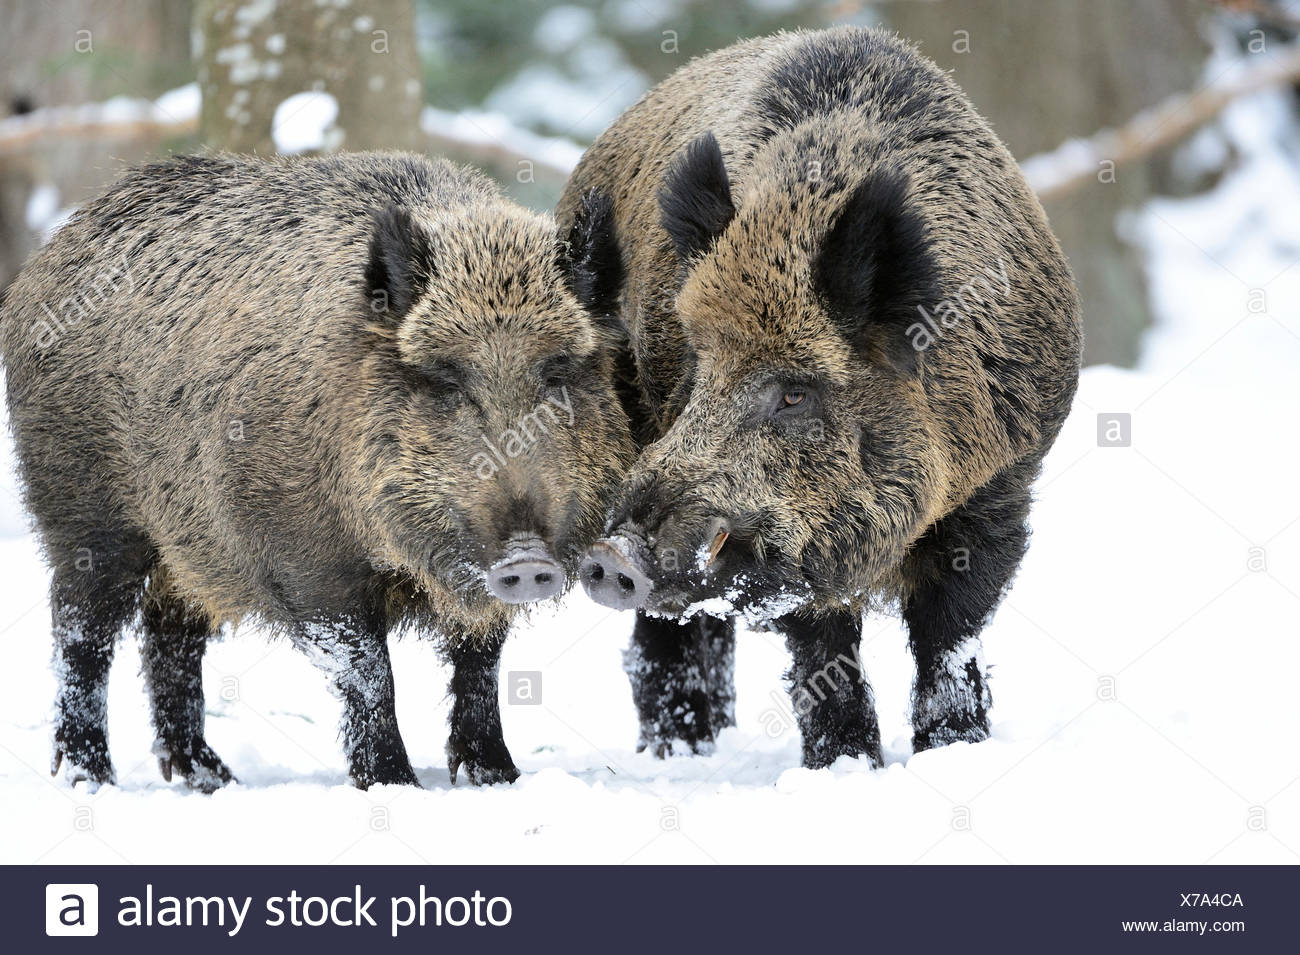 Wild boar, animal, Germany, Europe, Sus scrofa scrofa, sow, wild boars, black game, cloven-hoofed animal, pigs, pig, vertebrates, Stock Photo